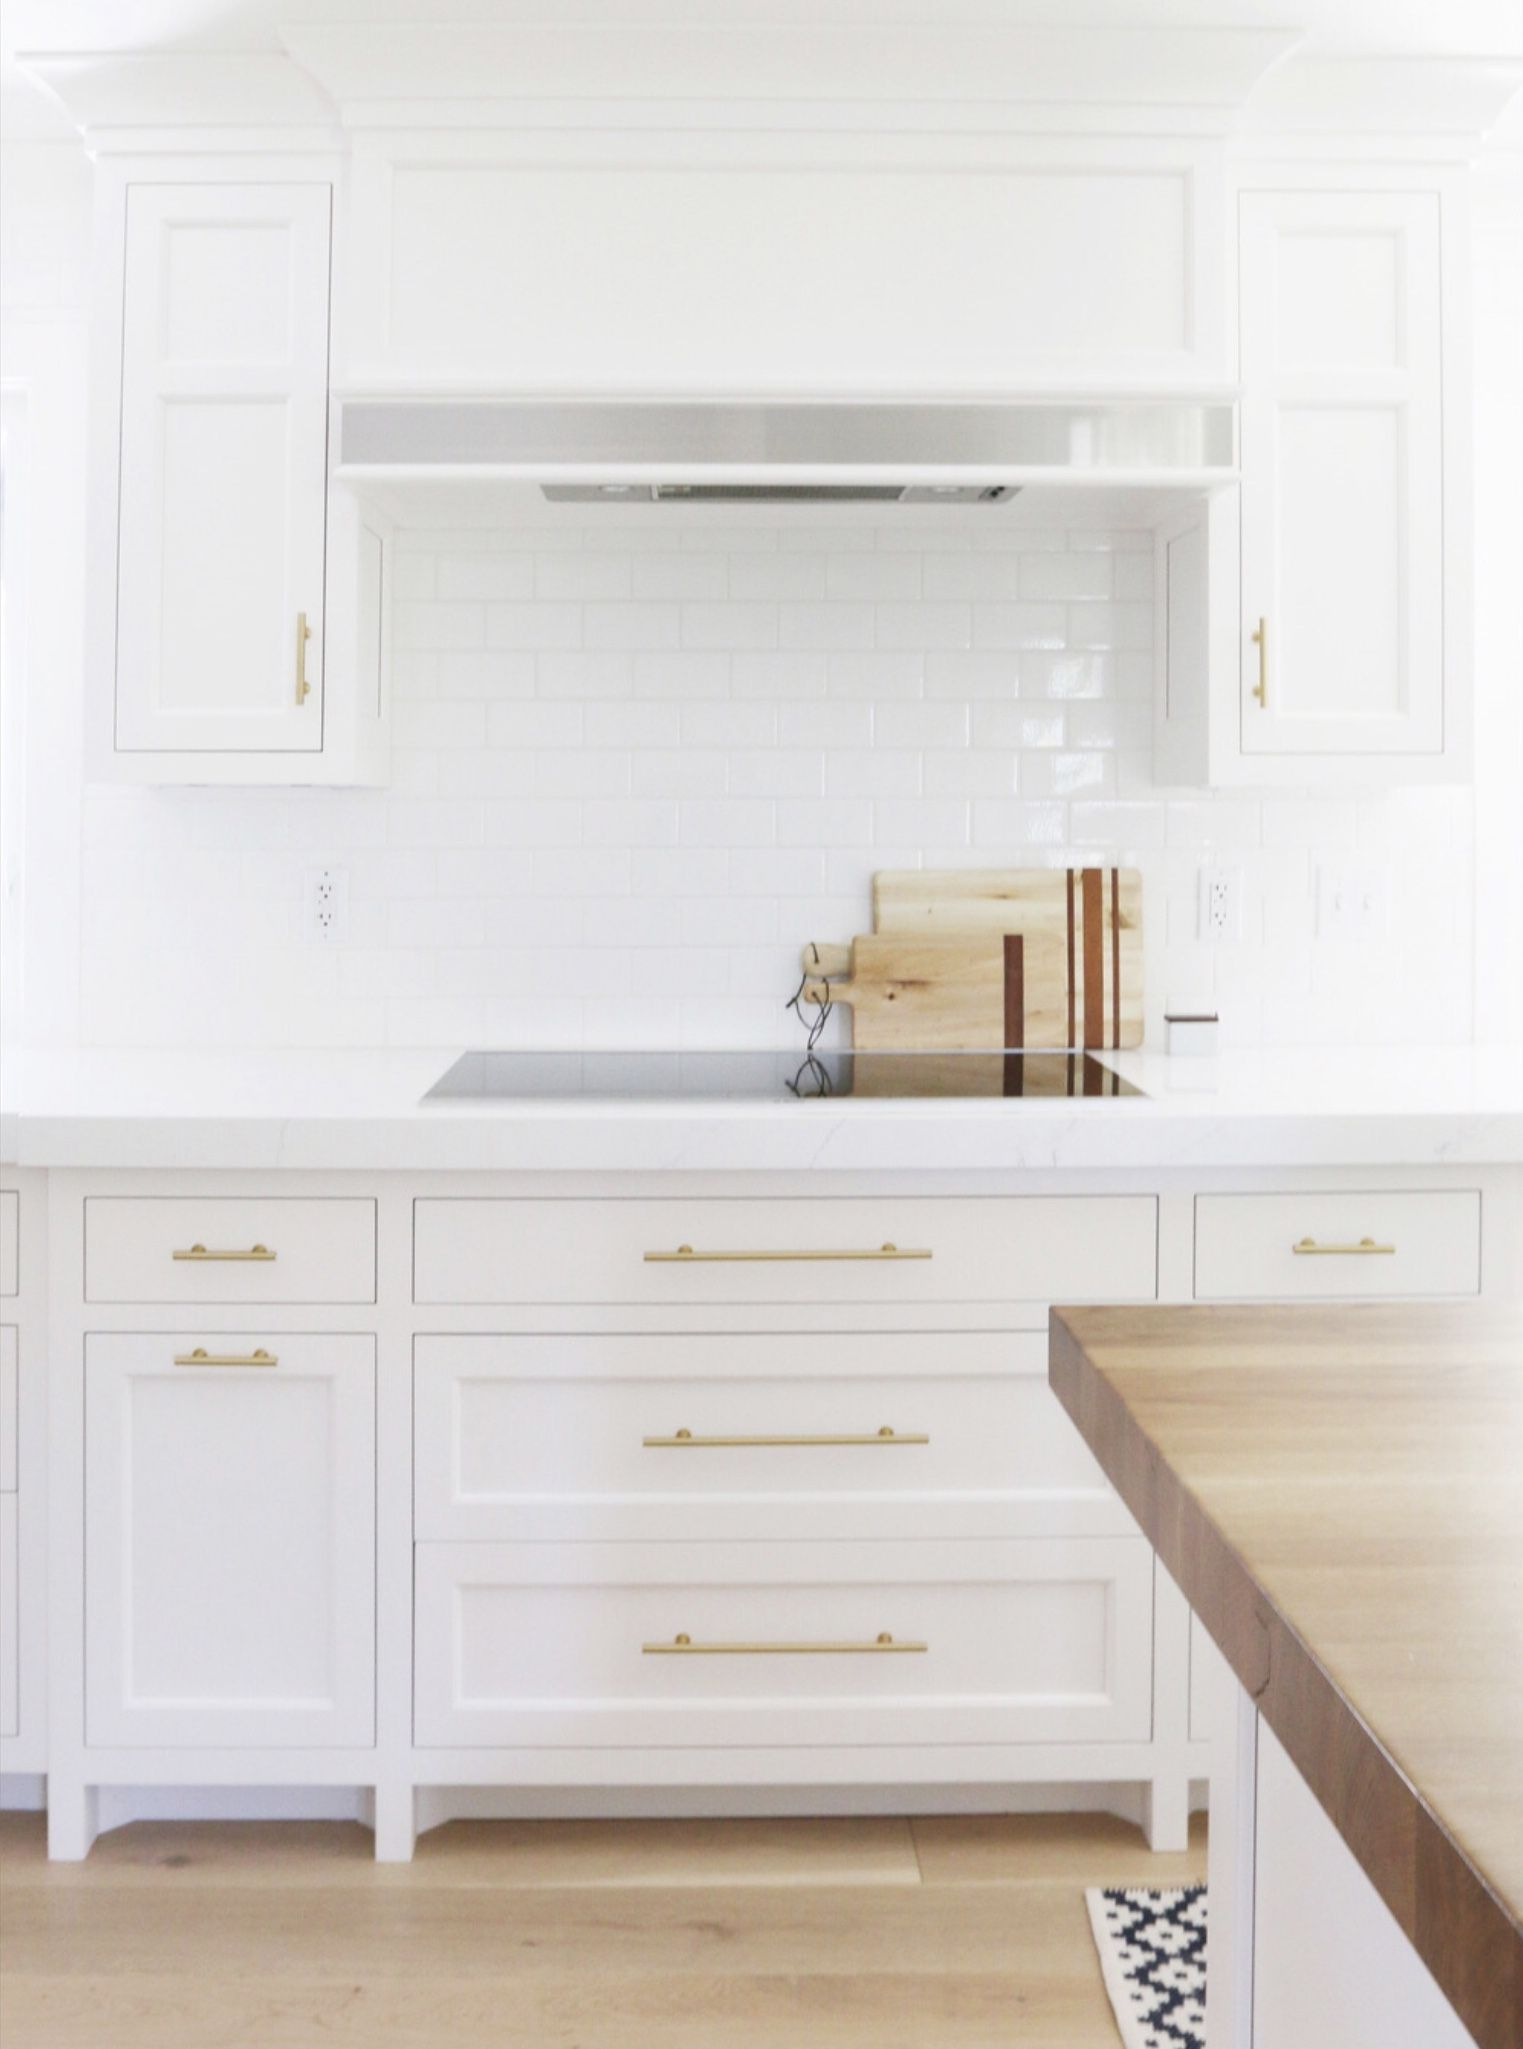 Pin By Stephanie Gelinas On Cuisine In 2020 White Kitchen Remodeling Kitchen Cabinet Trends Kitchen Remodel